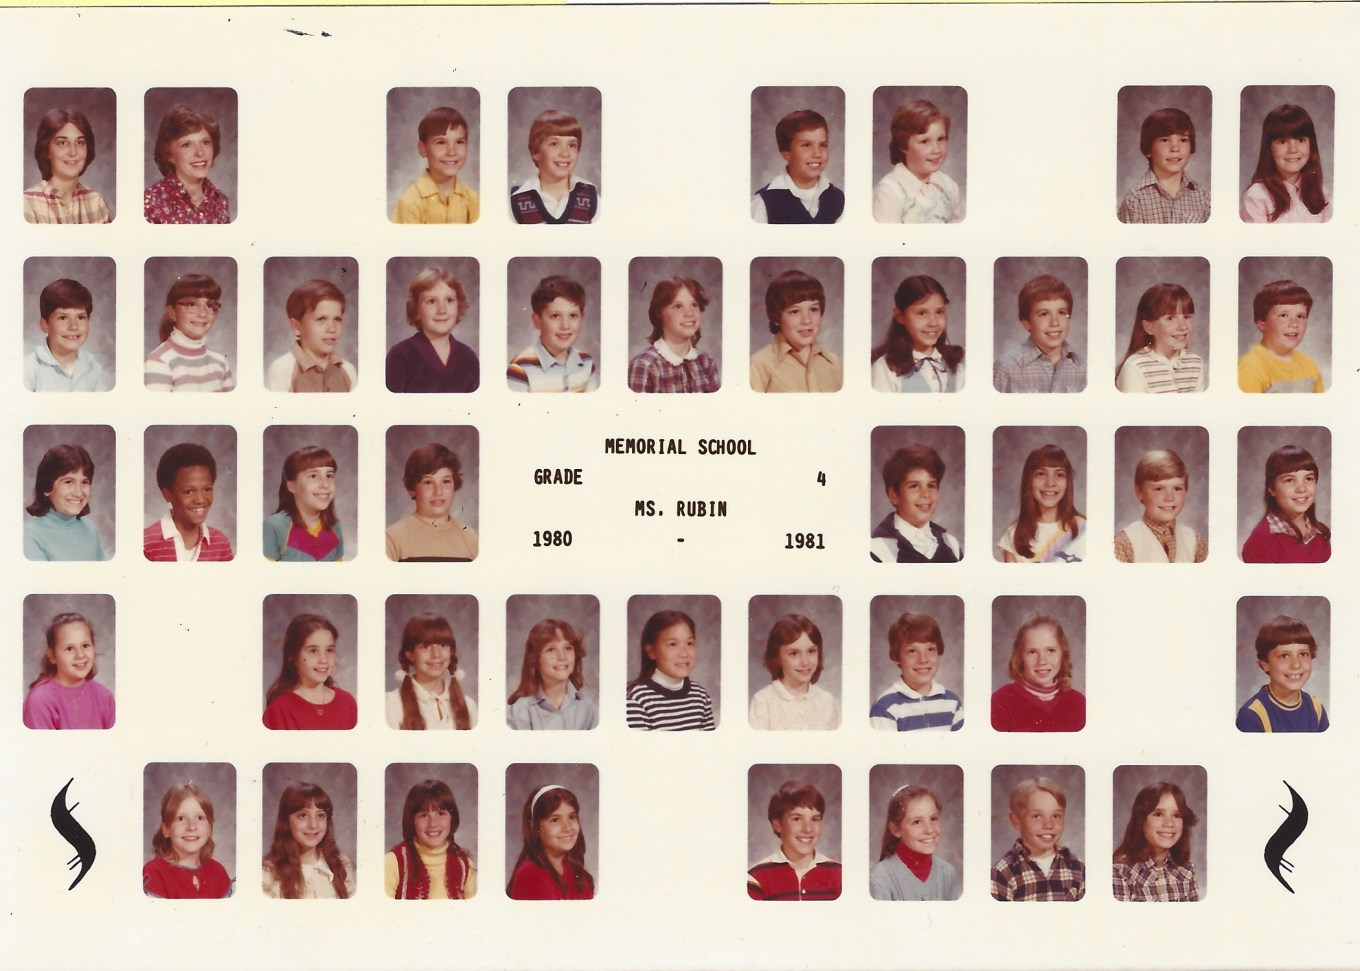 Ms Rubin Memorial School 1980, Burlington MA